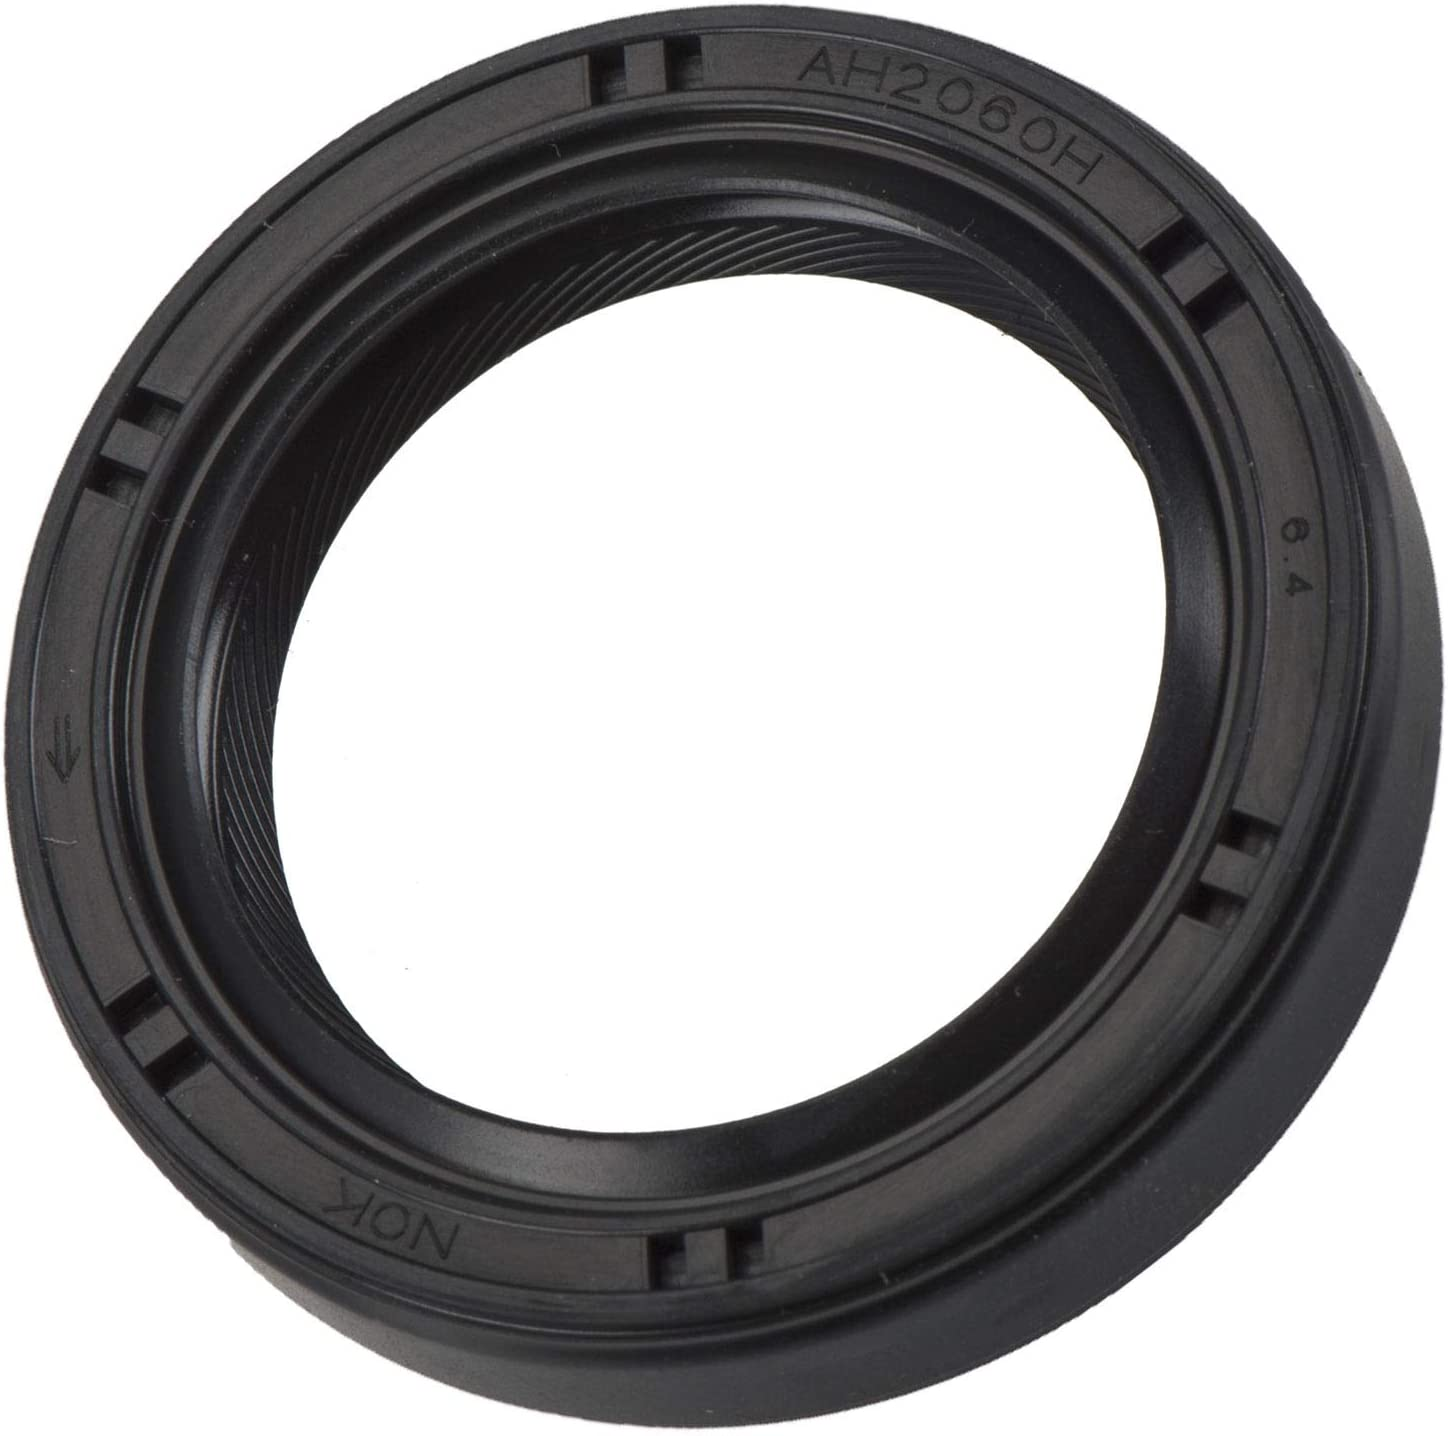 Genuine New 1994-2018 Subаru Transfer Case Output Shaft Oil Seal 35x50x11 806735210